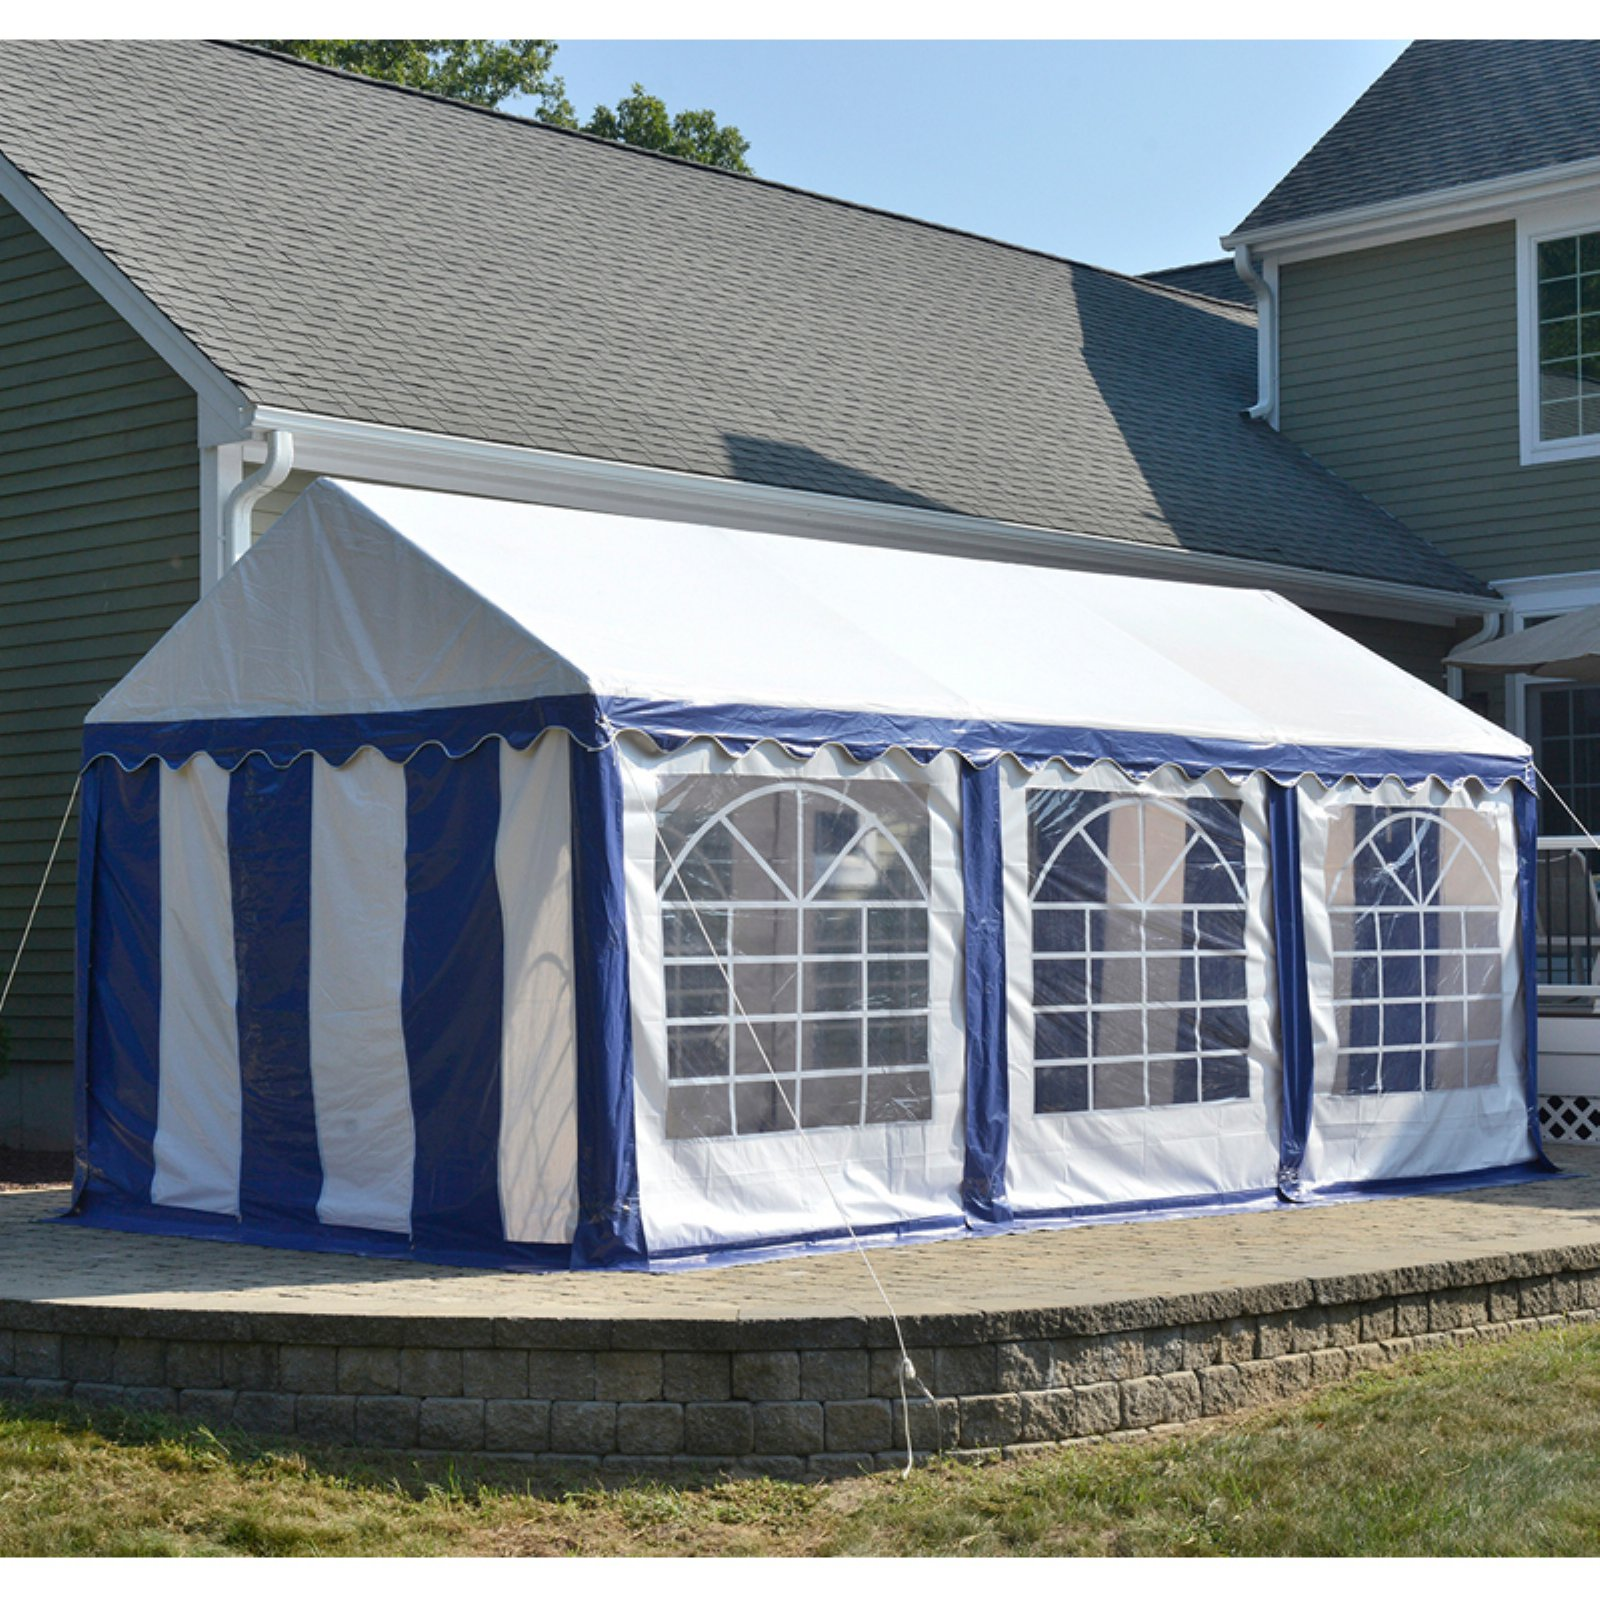 ShelterLogic 10 x 20 ft. Canopy & Enclosure Kit Blue/White